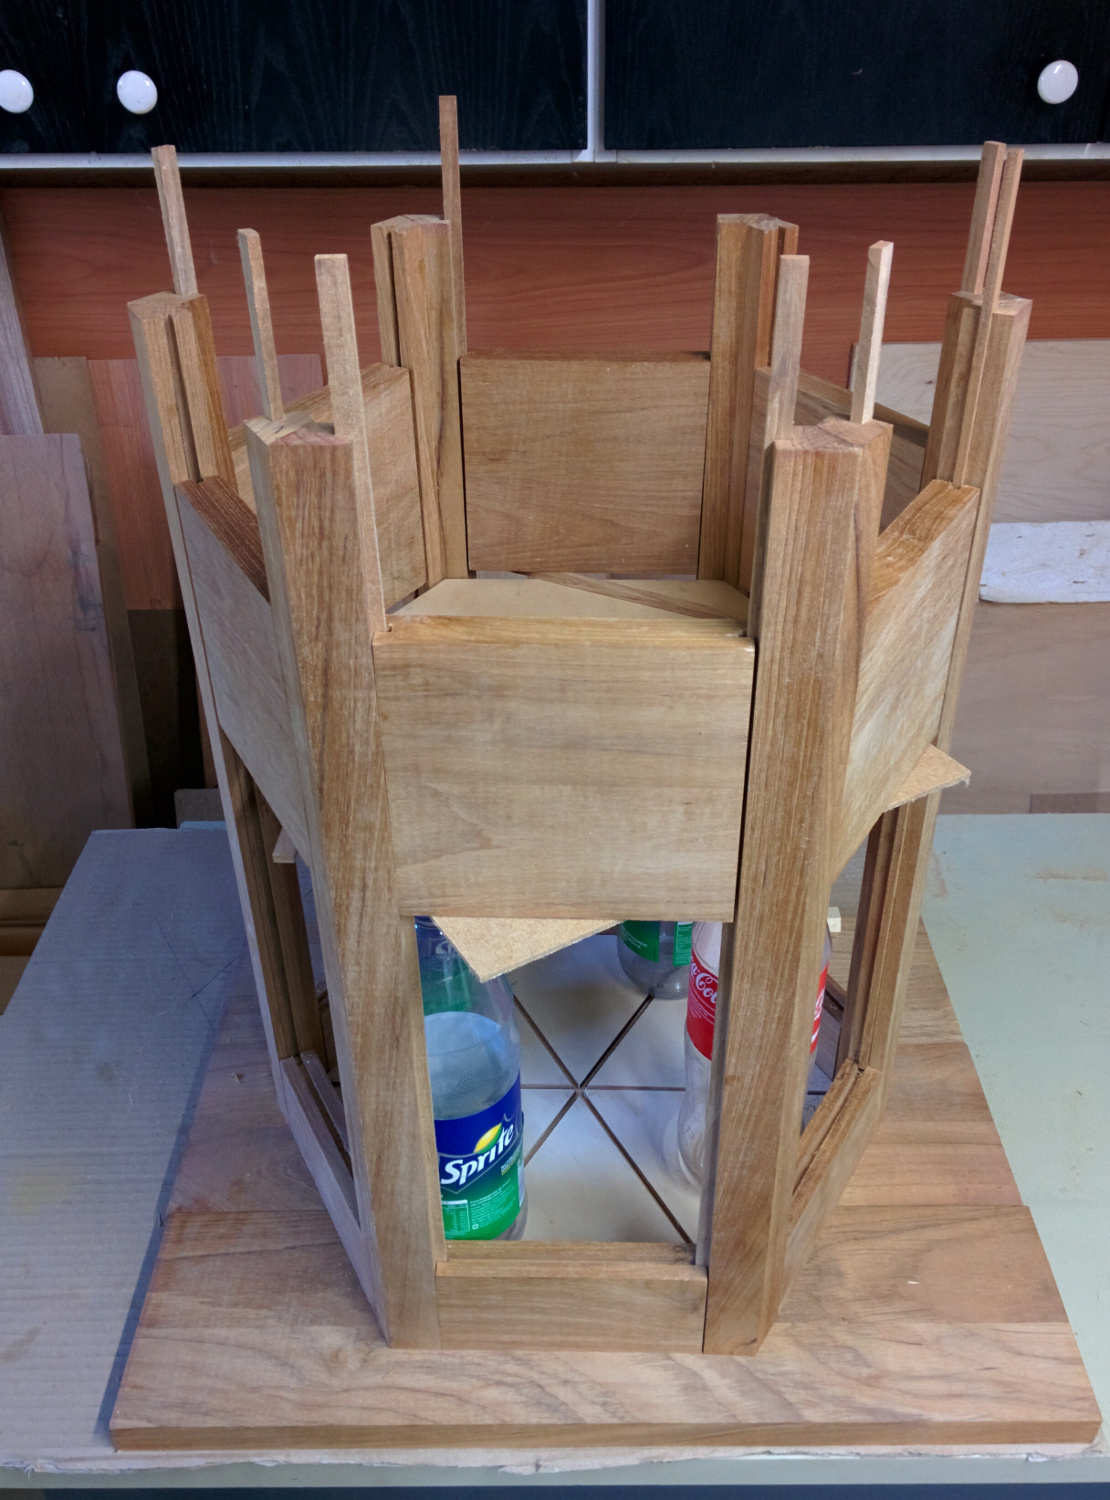 Using his woodworking skills, Stefan made a hexagonal case with six triangular compartments